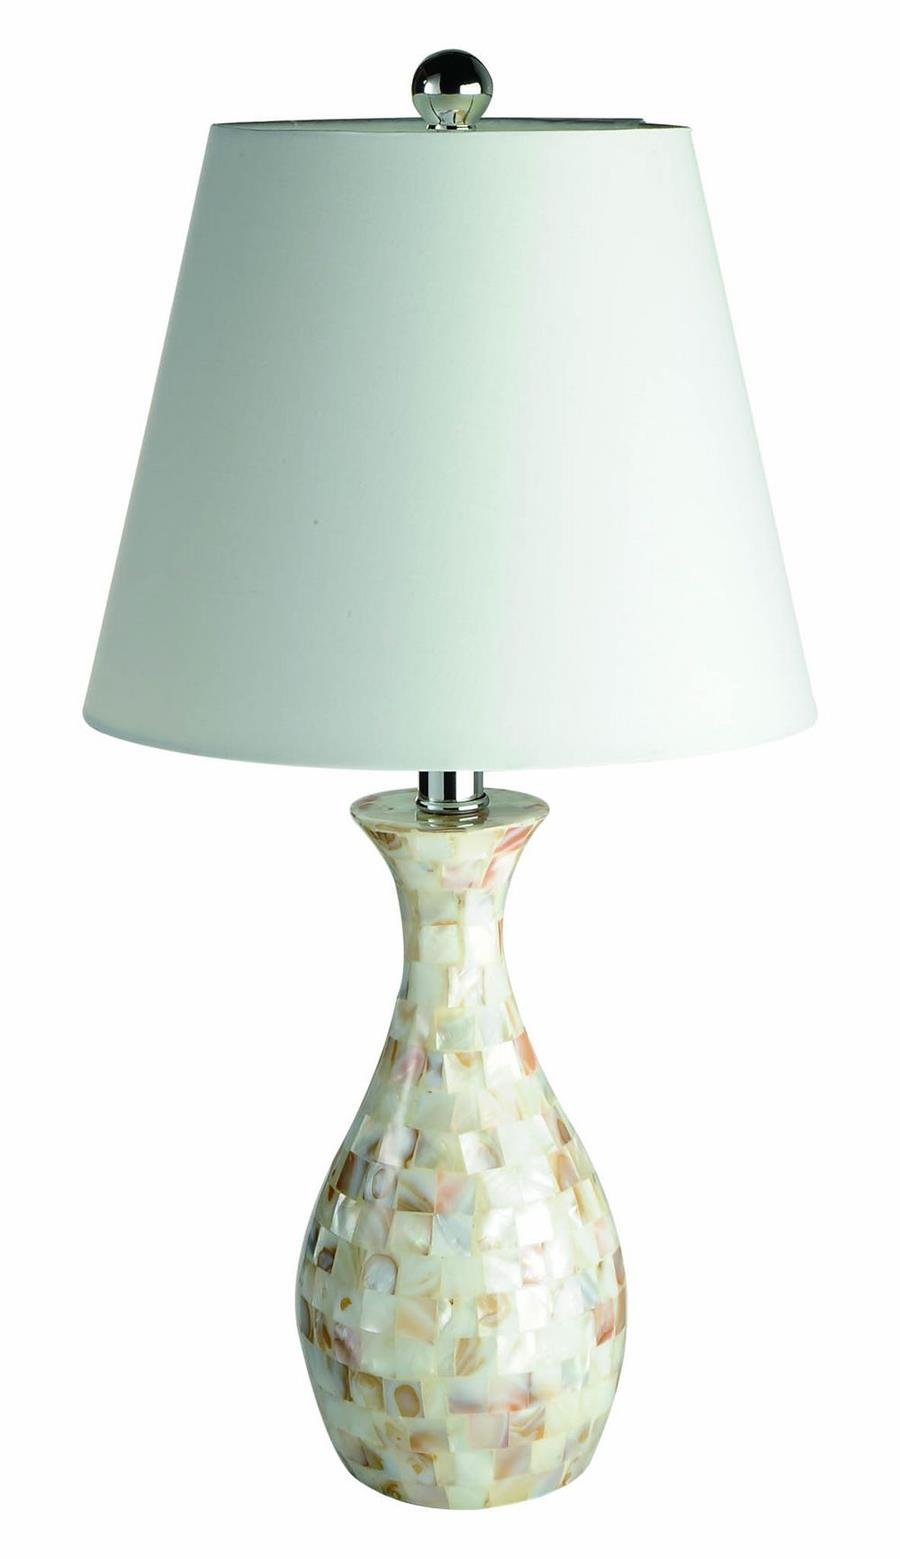 Trendy Seashell Tiled Mosaic Look Curved Table Lamp with Chrome Accents